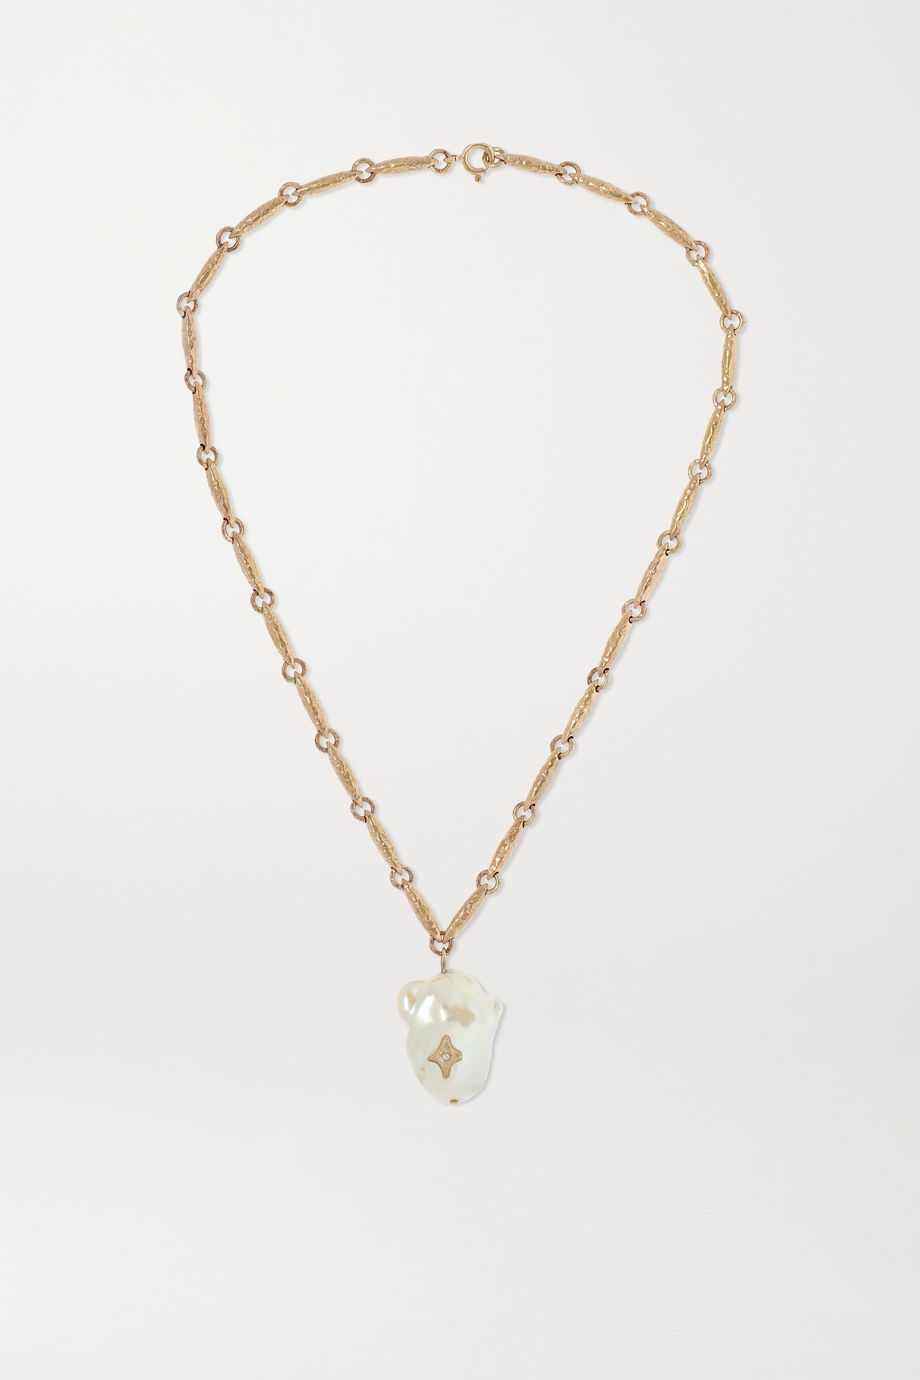 Pascale Monvoisin Charlie N°2 9-karat gold, pearl and diamond necklace